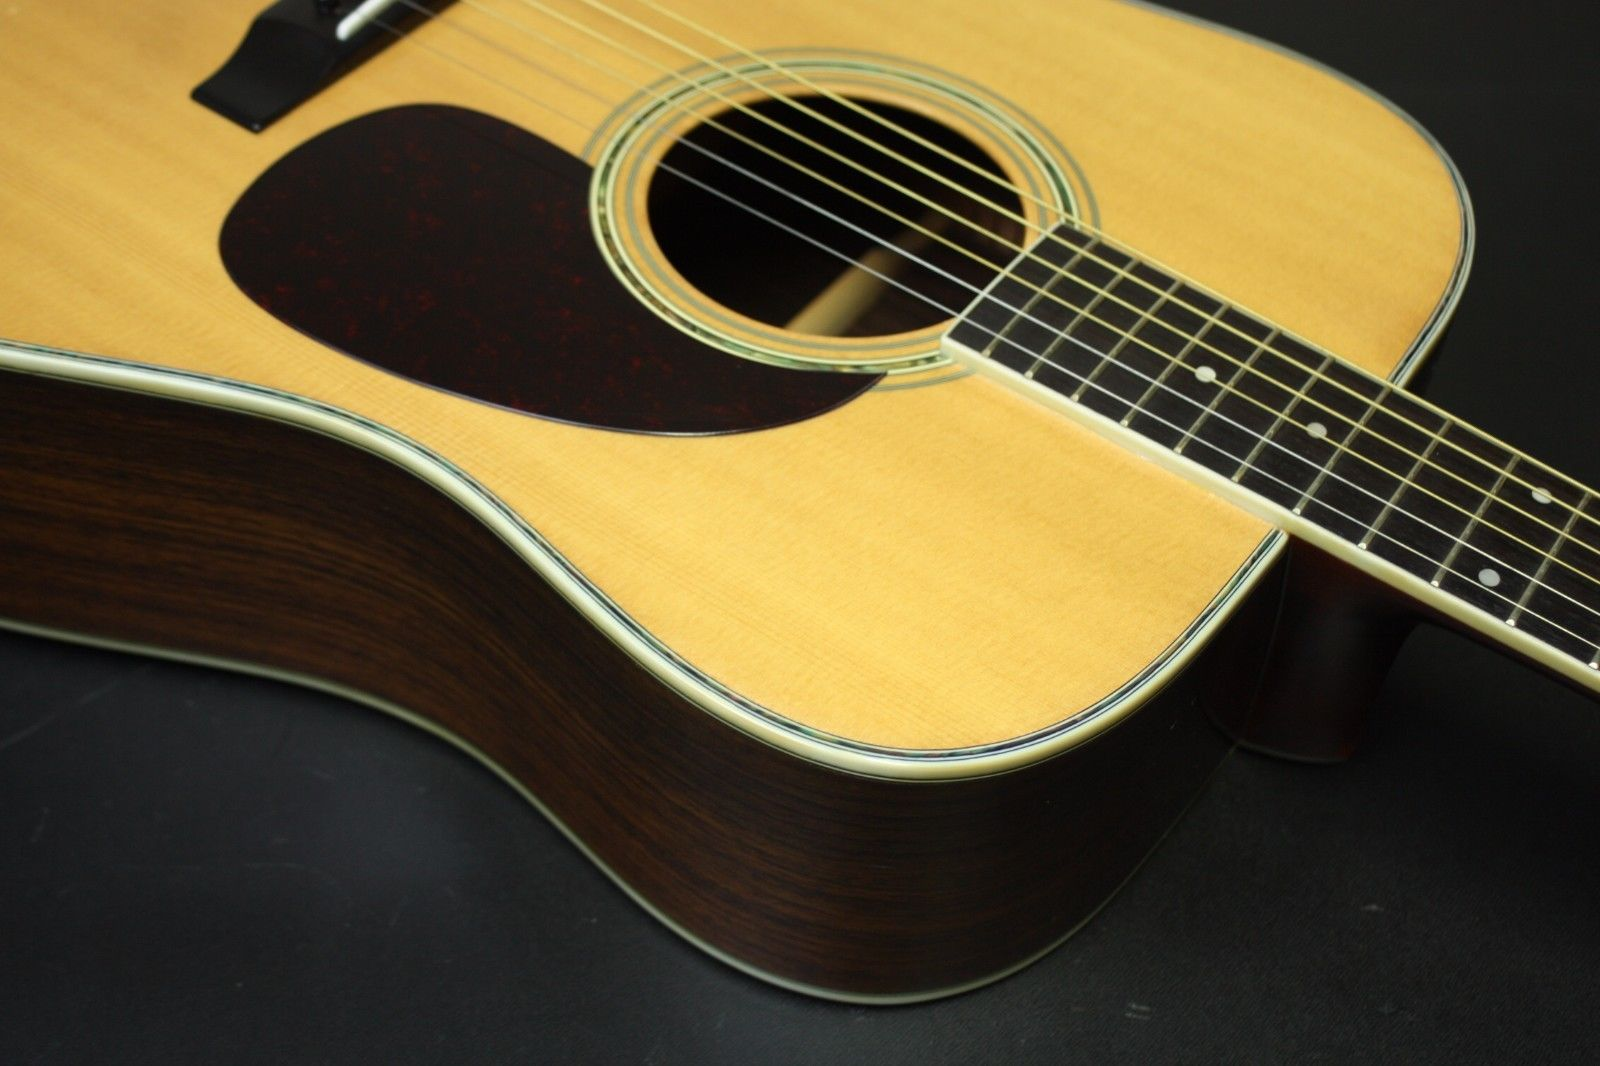 '80s MORRIS W-30 Japanese Vintage Acoustic Guitar w/Hard Case AS IS condition